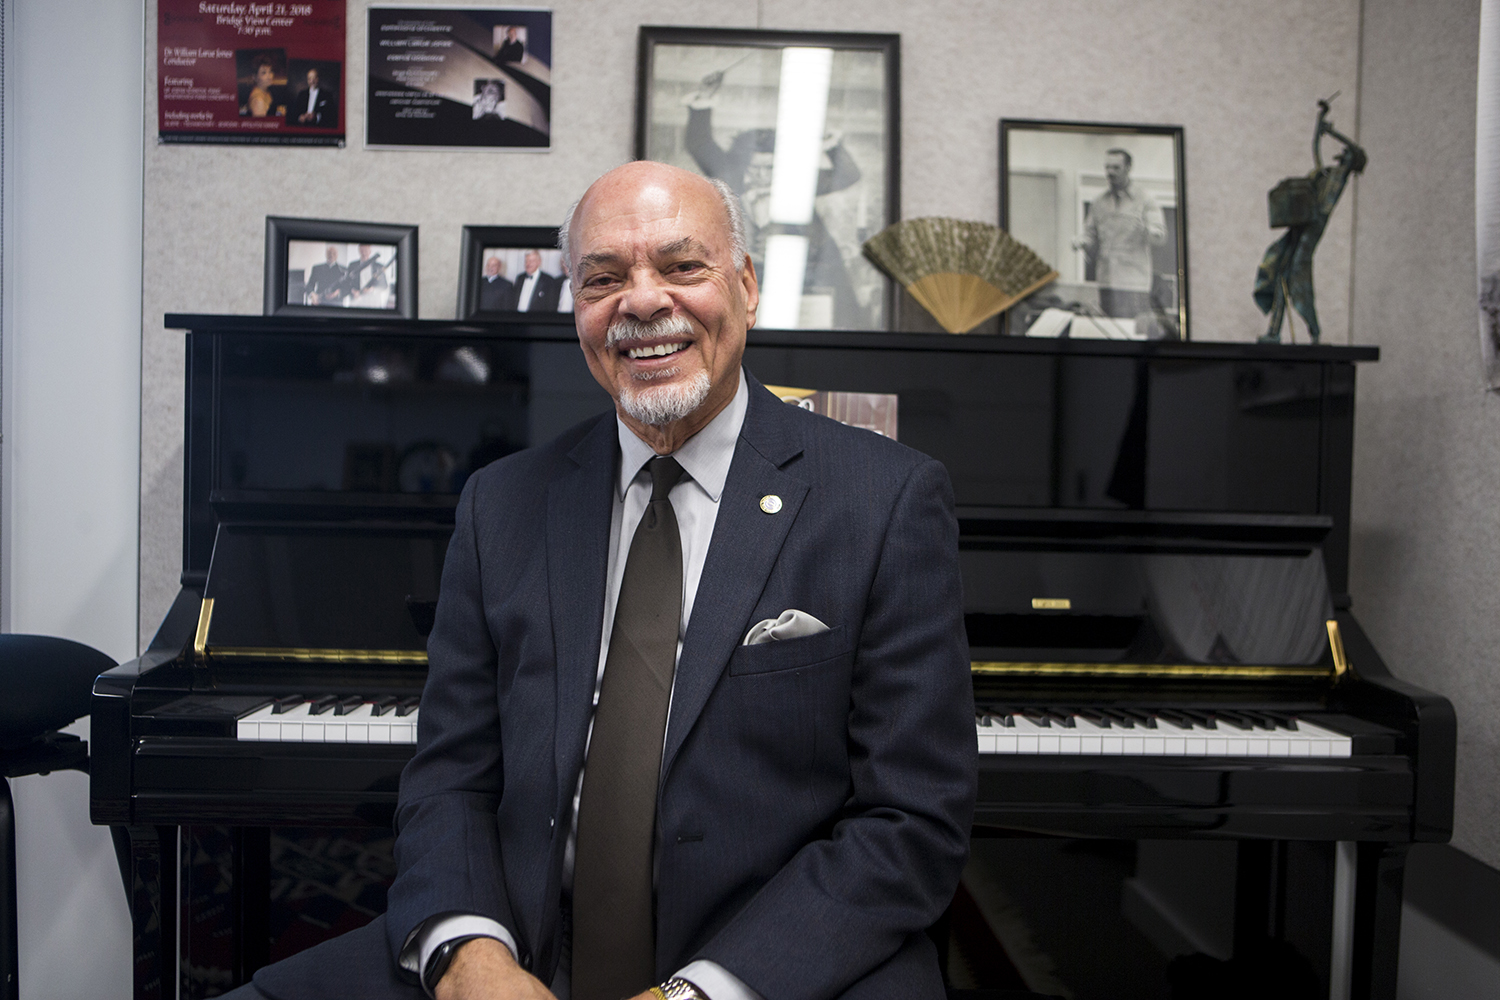 UI orchestra director, Dr. William LaRue Jones, poses for a portrait in his office at Voxman Music Building in Iowa City on Tuesday, February 5, 2019. Dr. Jones is retiring after teaching at the University for over two decades.